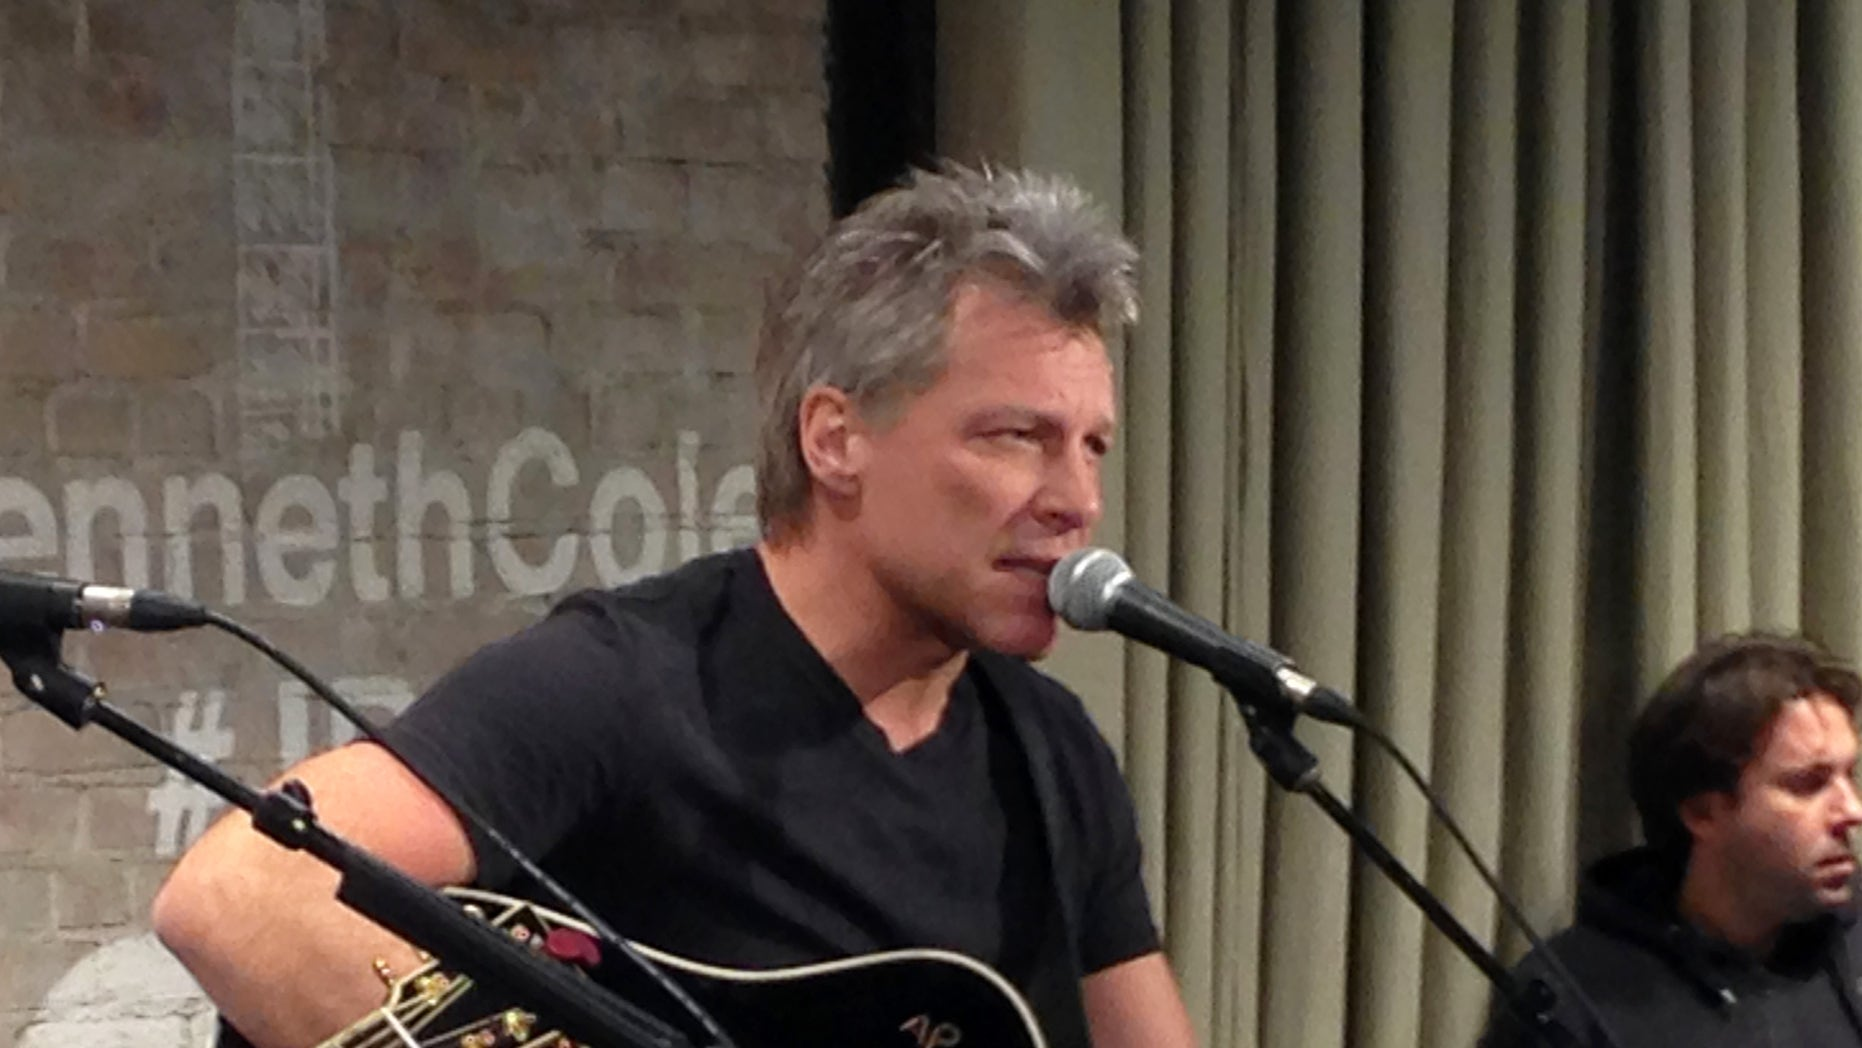 Bon Jovi performs in New York on Thursday, Feb. 12, 2015 as part an acoustic music series, Common Thread, an initiative created by the award-winning singer-songwriter, and fashion designer Kenneth Cole. (AP Photo/John Carucci)